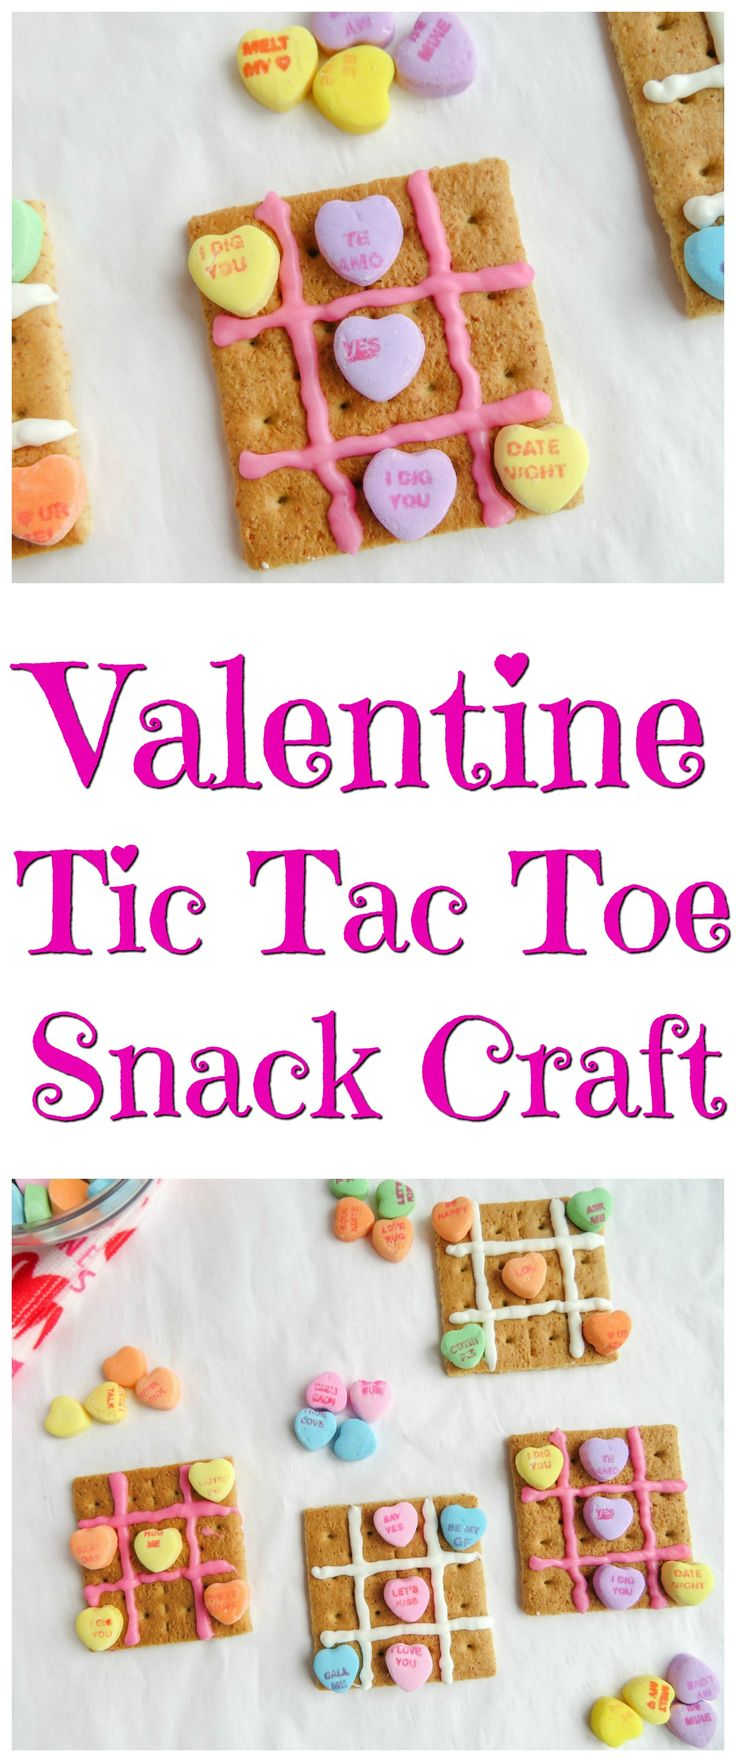 17 best images about fun babysitting treats and ideas valentine tic tac toe snack craft perfect for a classroom party too